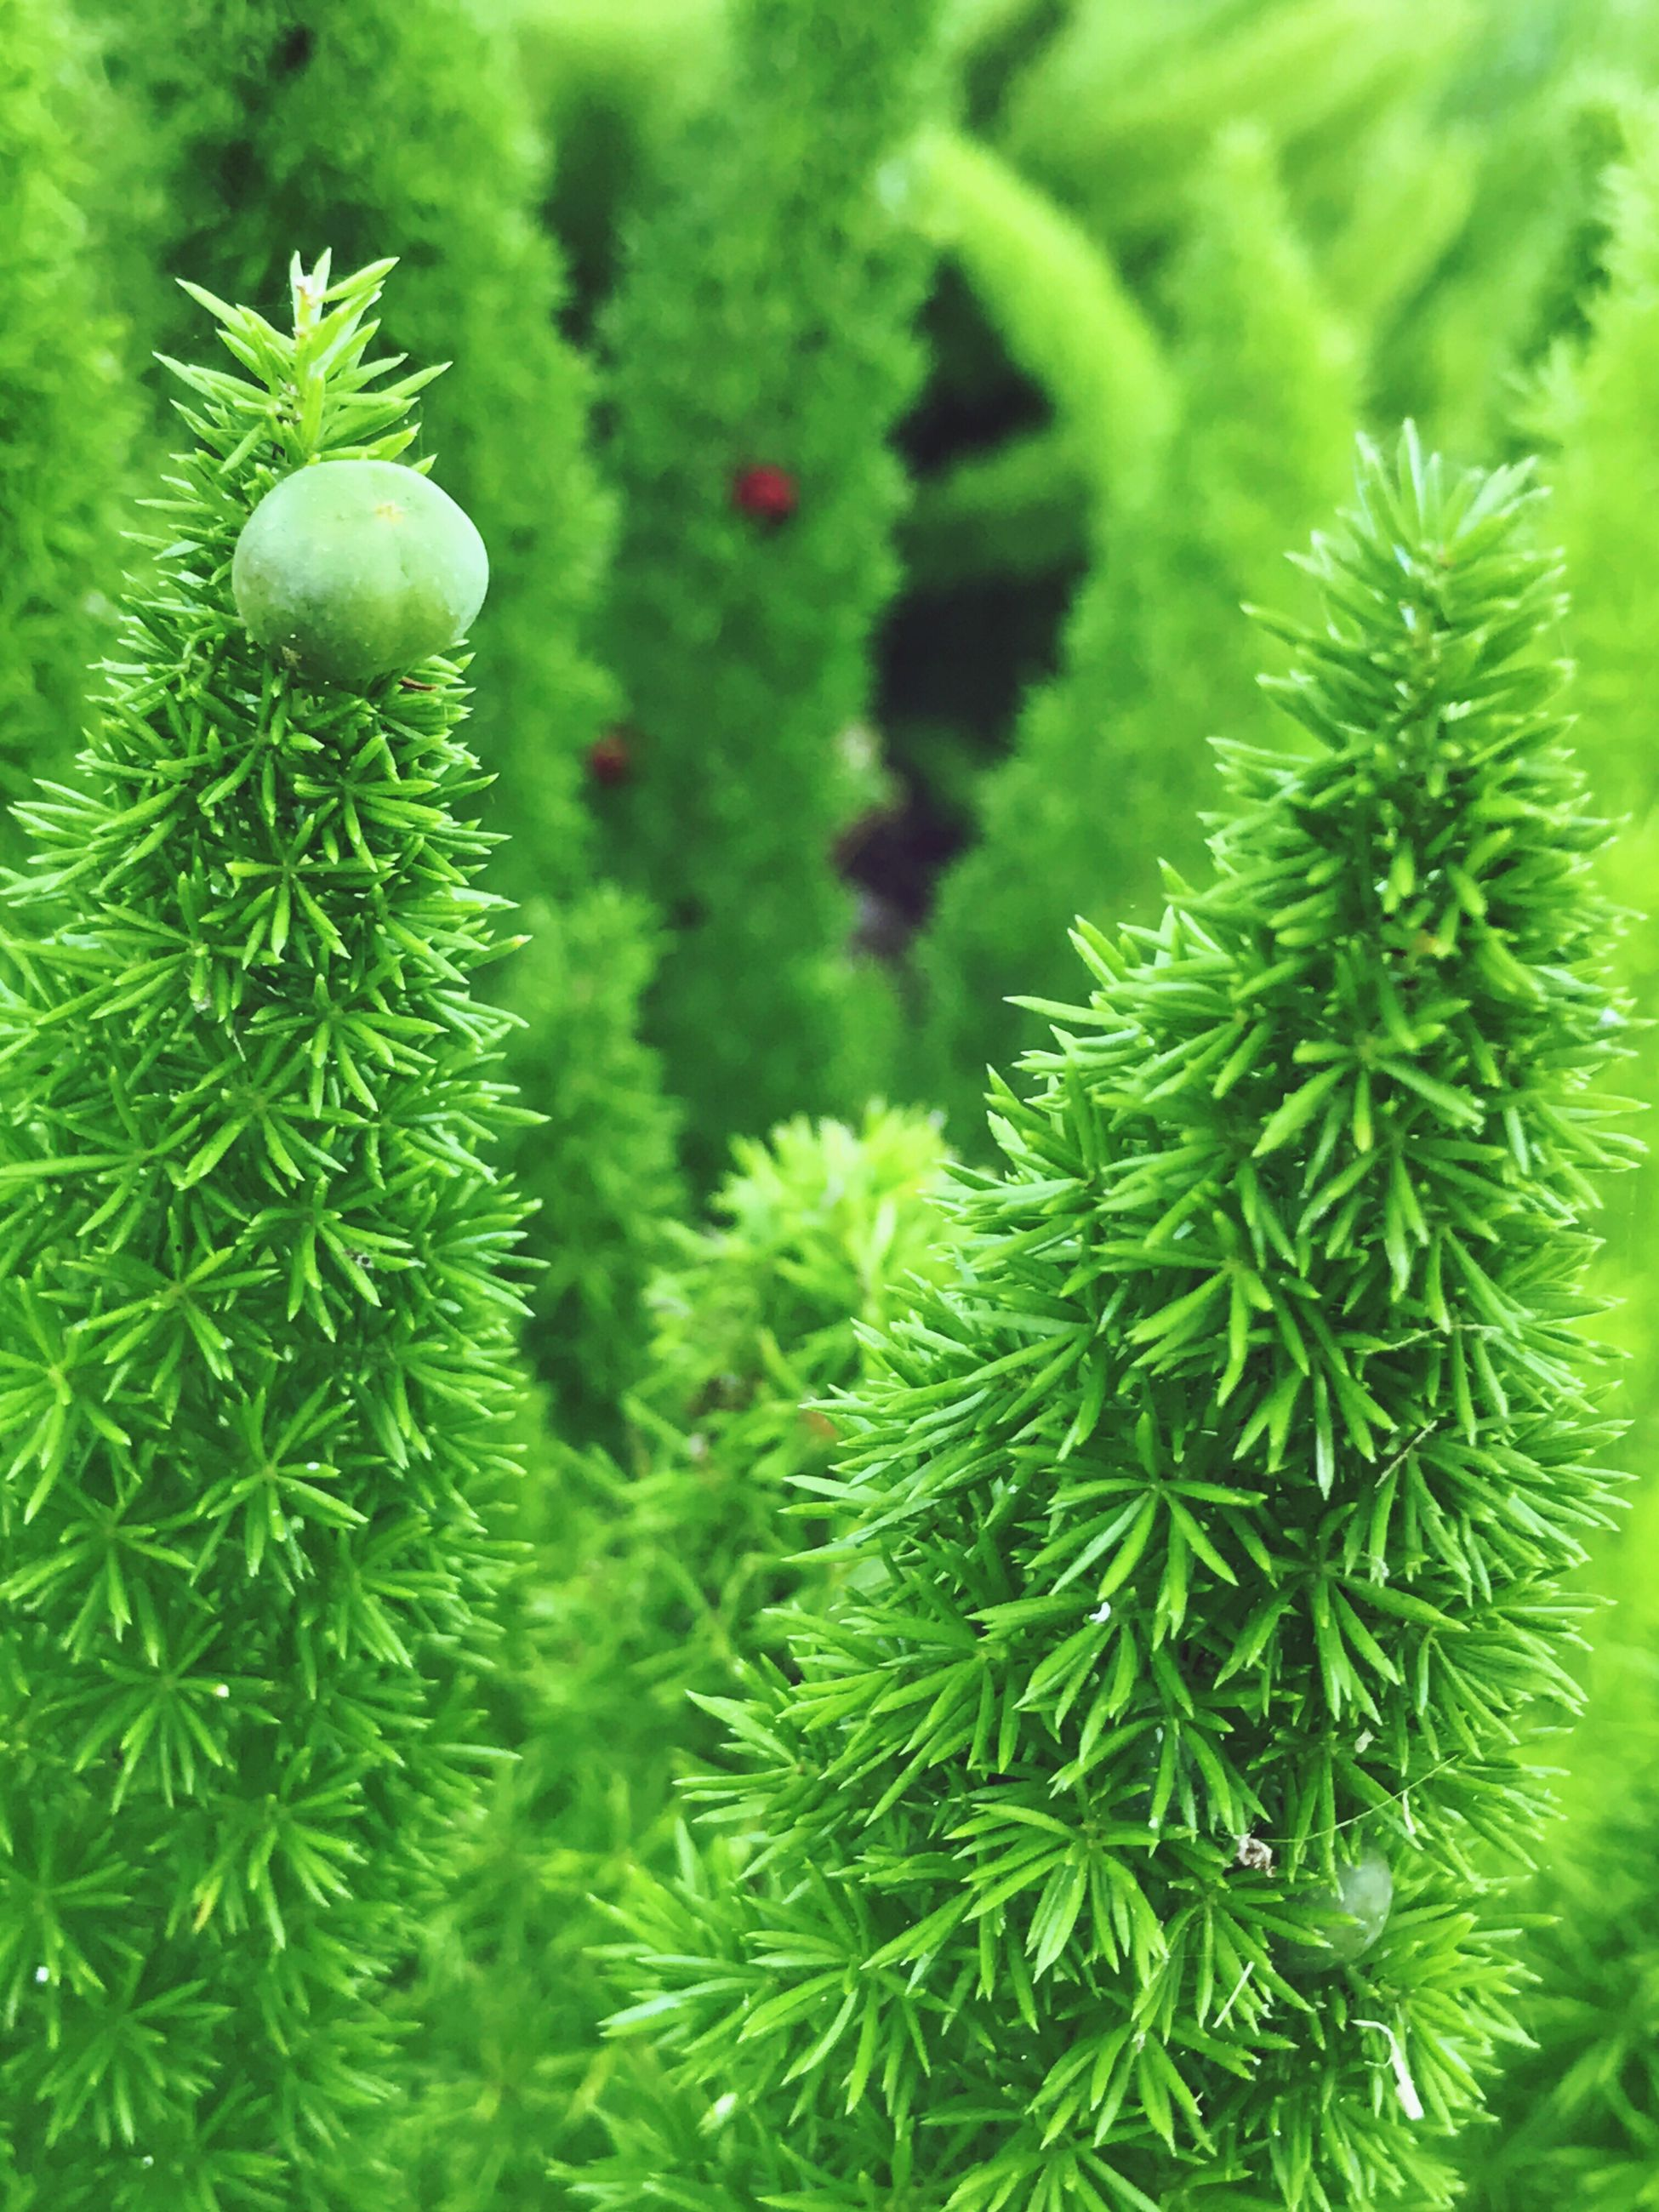 green color, growth, nature, plant, beauty in nature, close-up, no people, leaf, outdoors, day, freshness